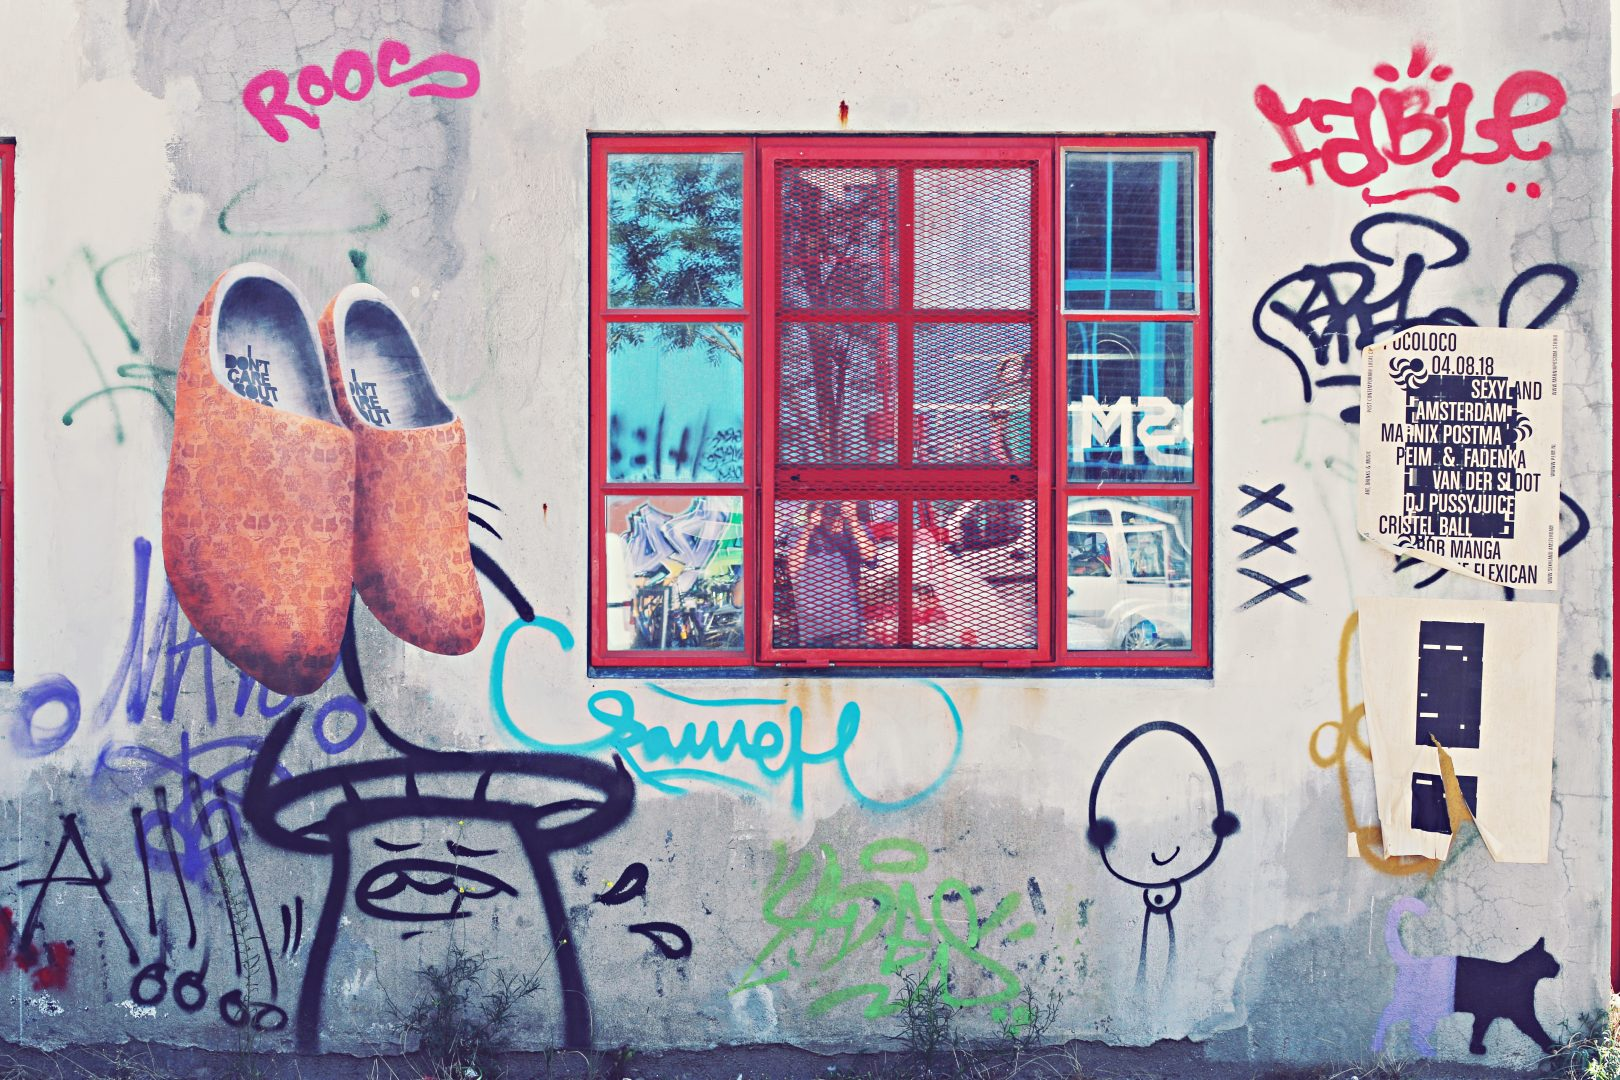 gray wall with red window and graffiti